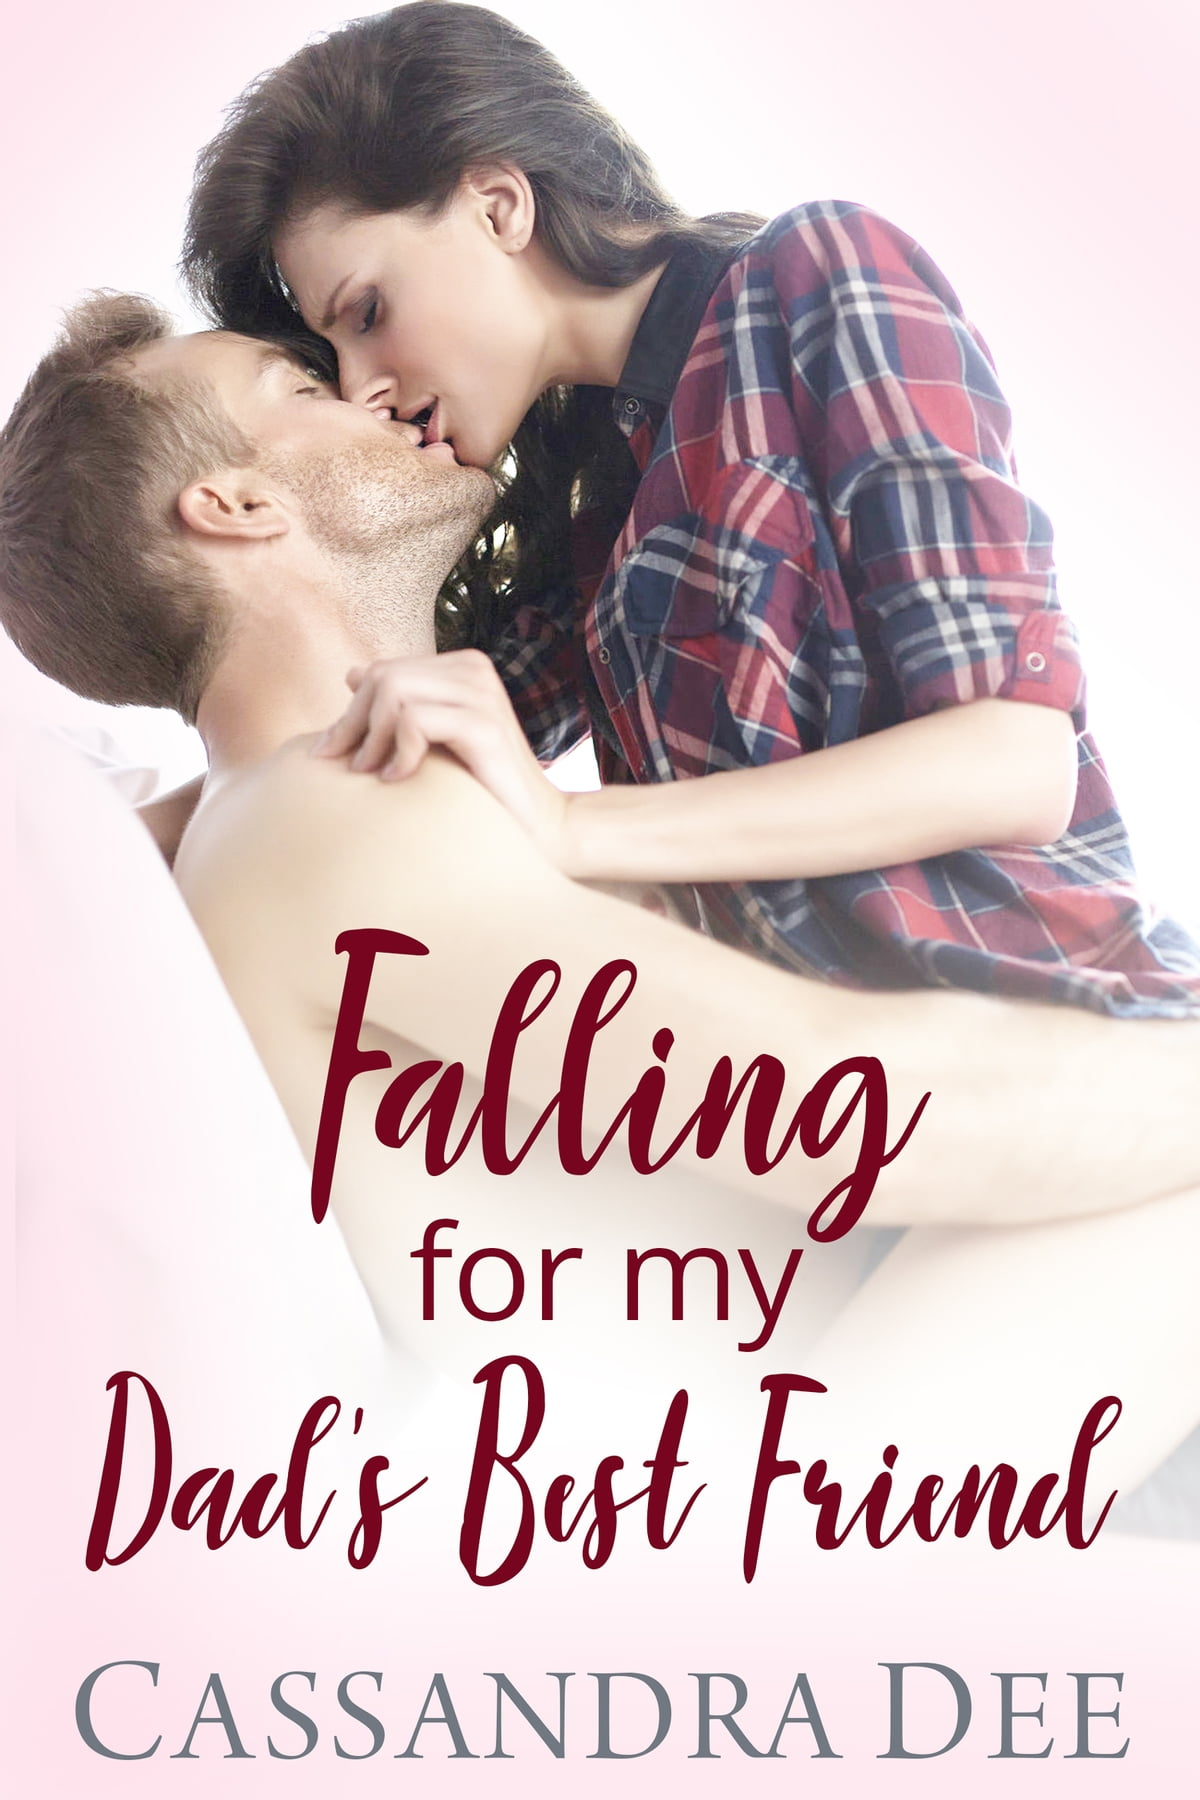 Falling for your friend lesbian